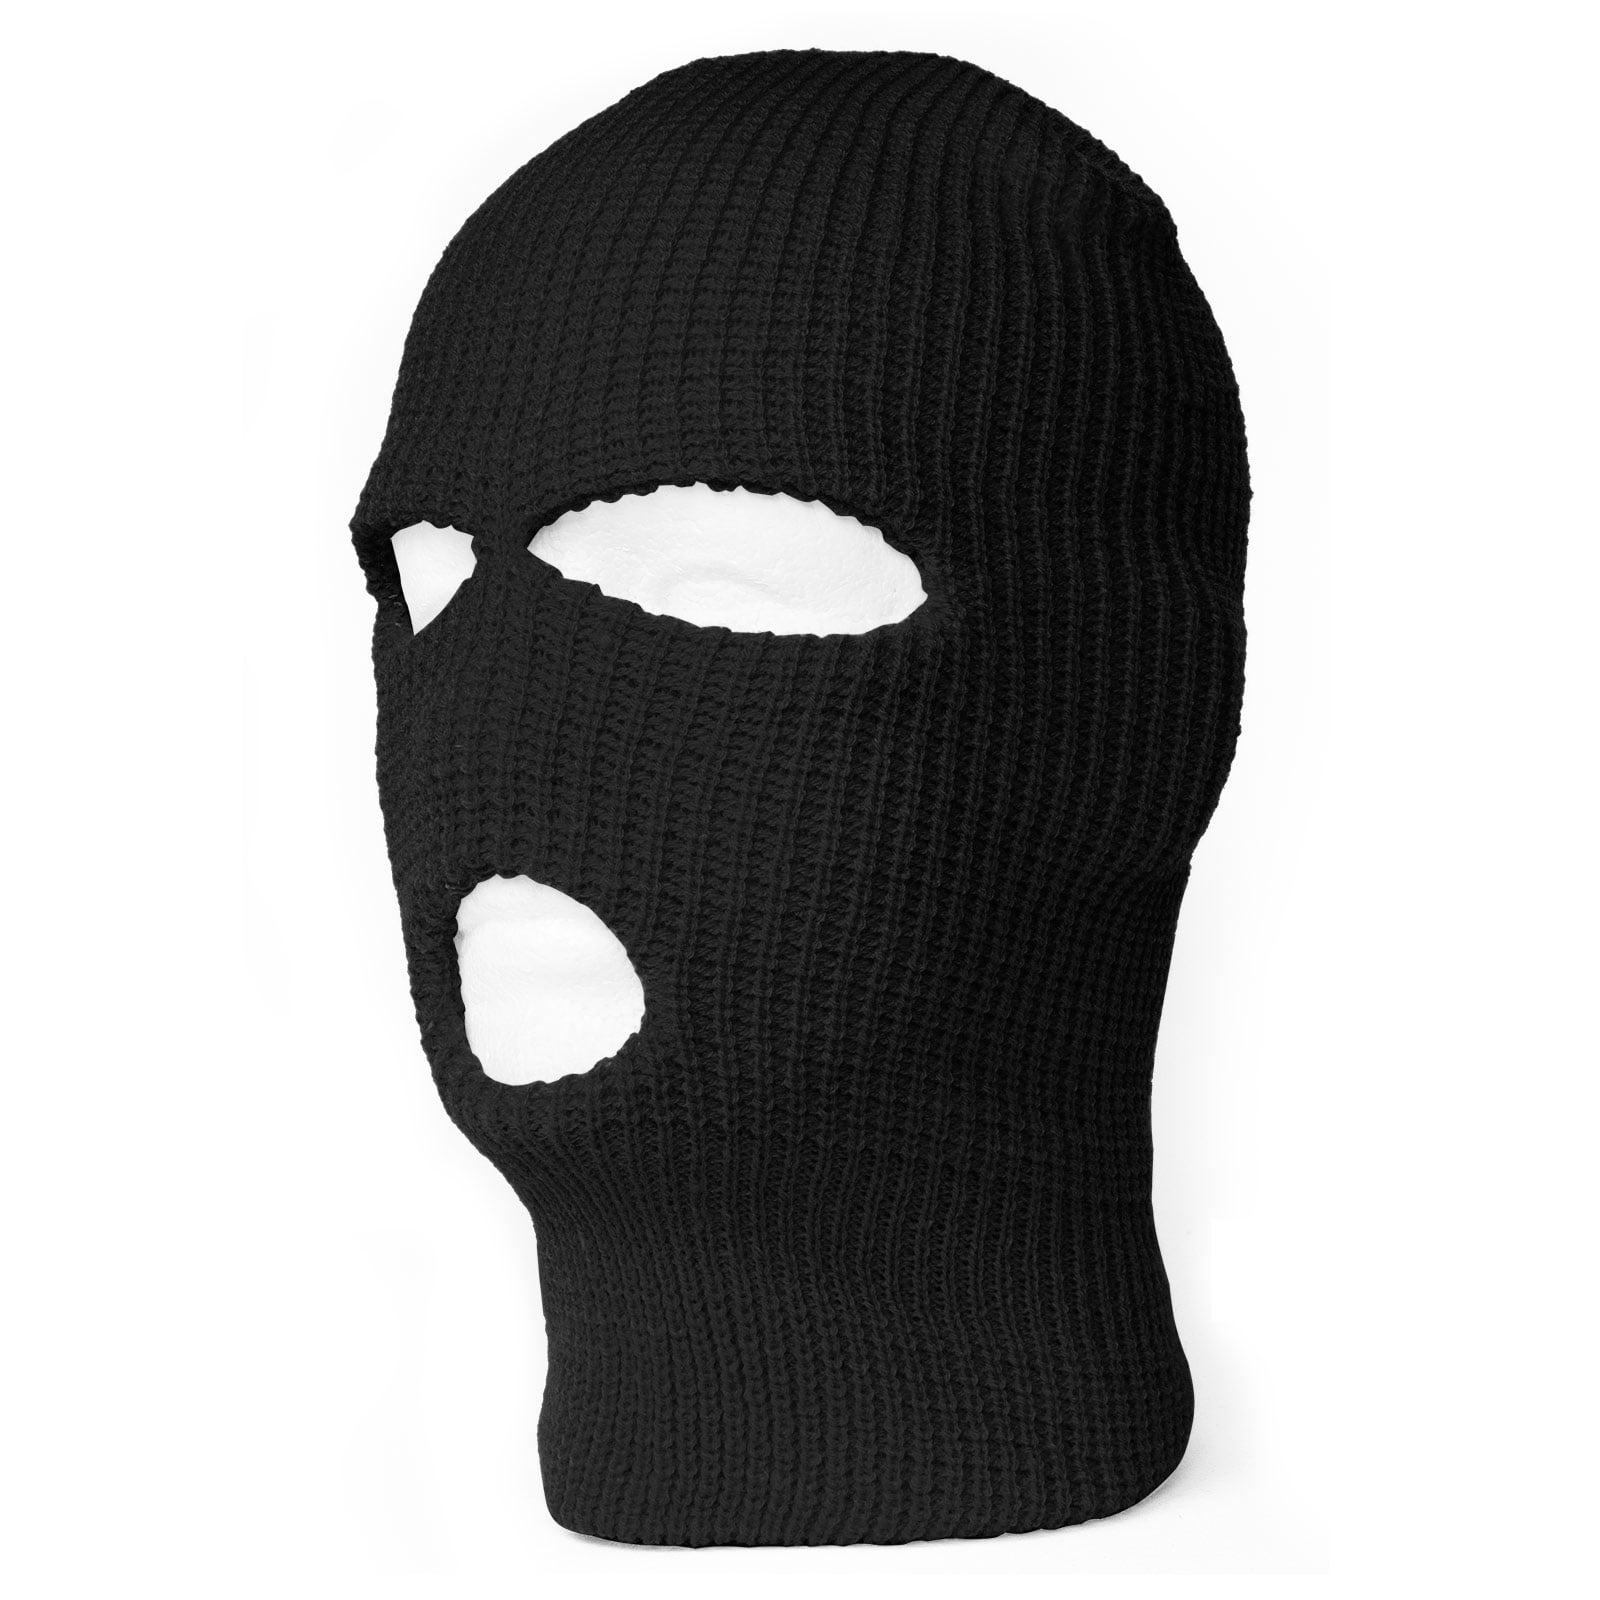 TopHeadwear's 3 Hole Face Ski Mask, Black 1pc by